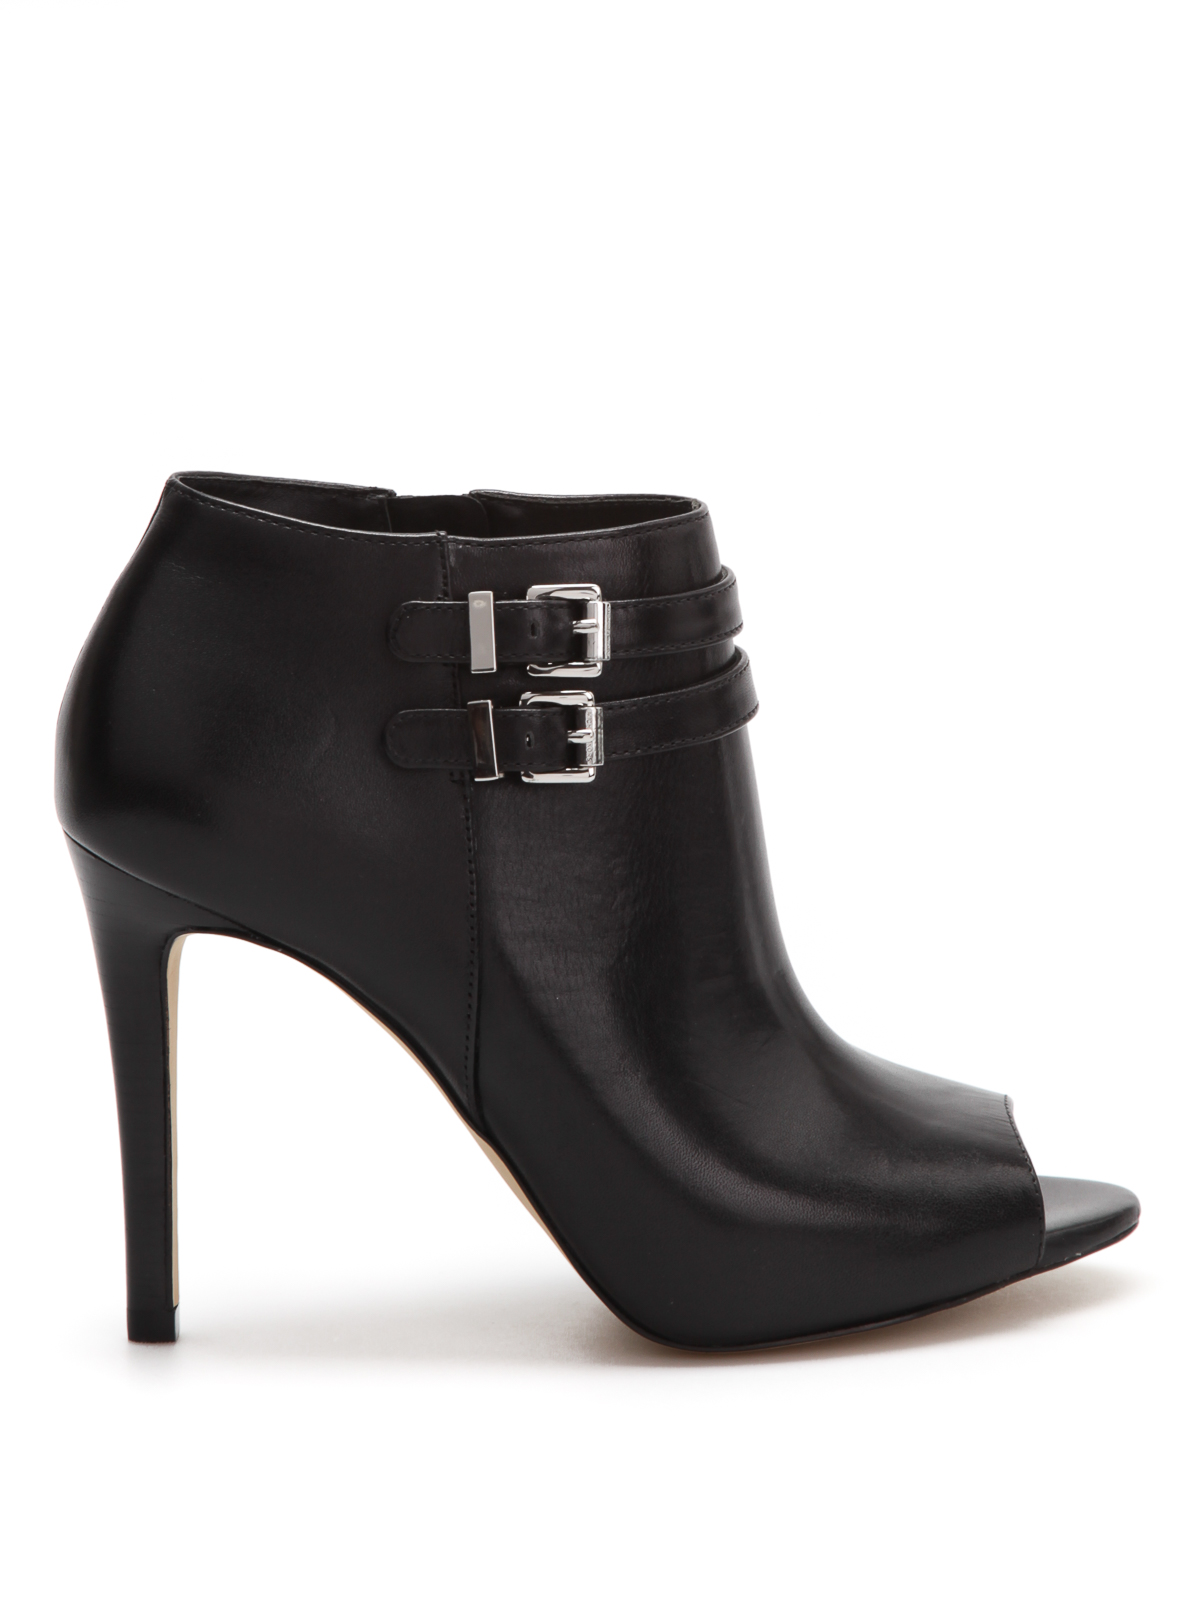 open toe leather ankle boots by michael kors ankle boots. Black Bedroom Furniture Sets. Home Design Ideas